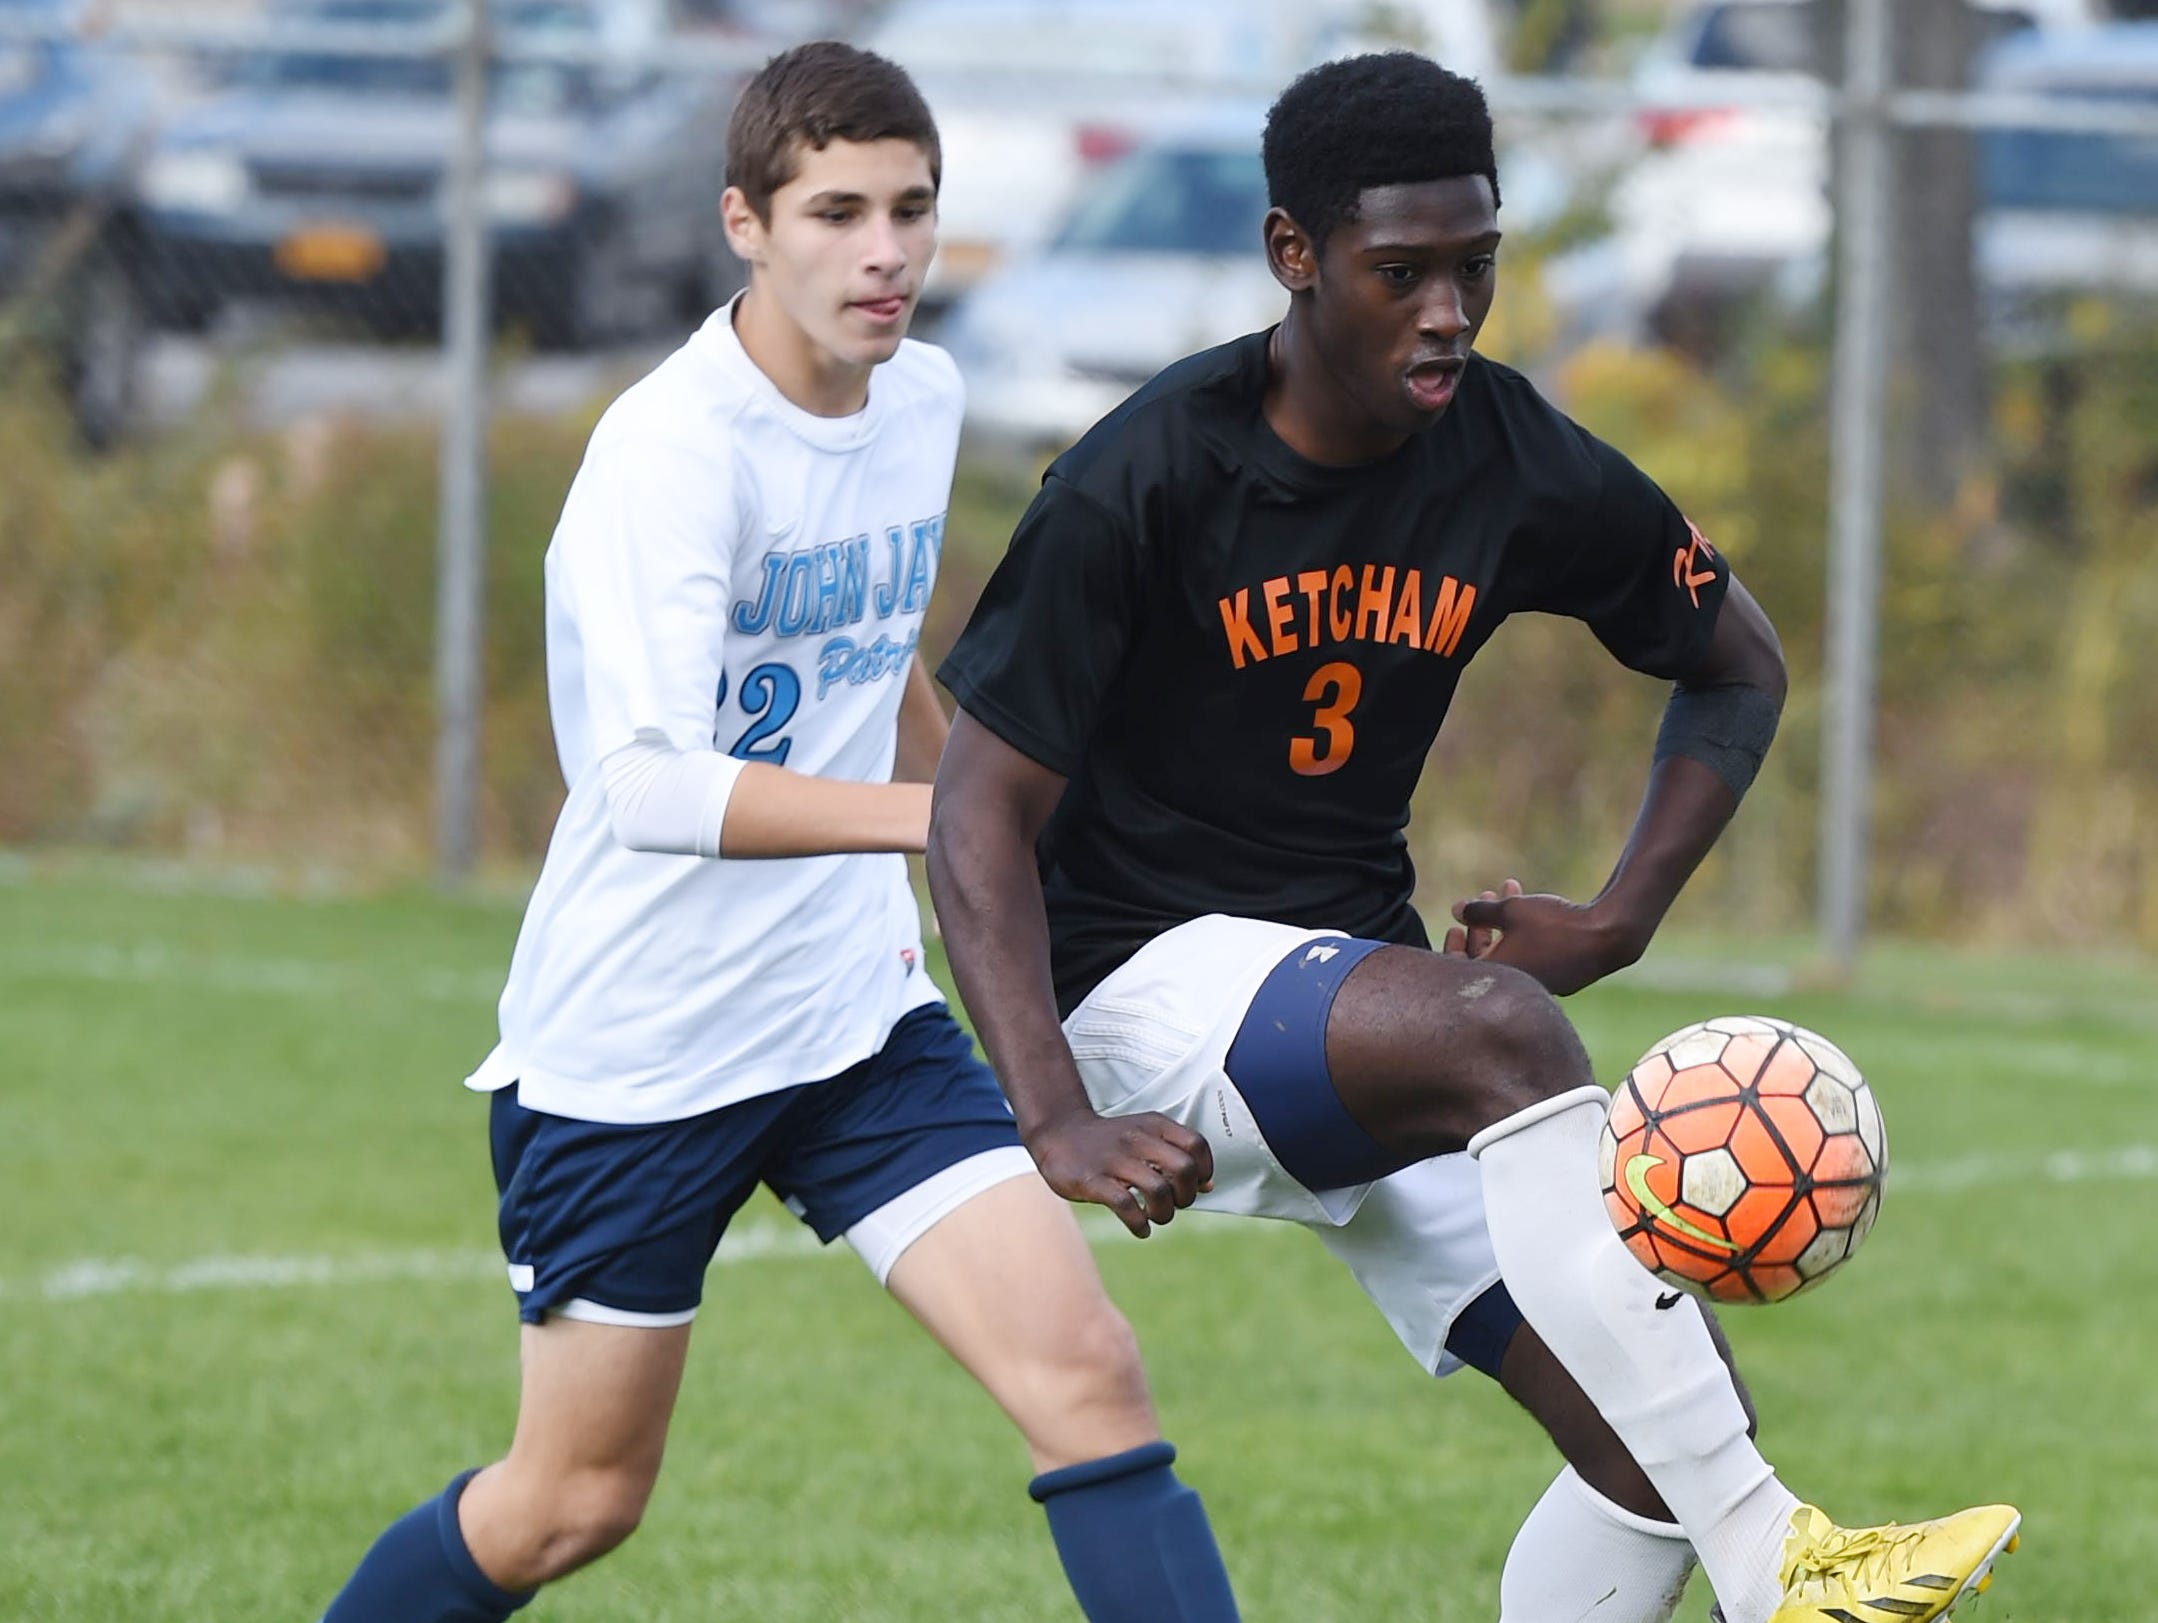 Ketcham's Eddie Armah gets the ball under control as John Jay's Michael Fino moves in on him during Saturday's game in Wappingers Falls.